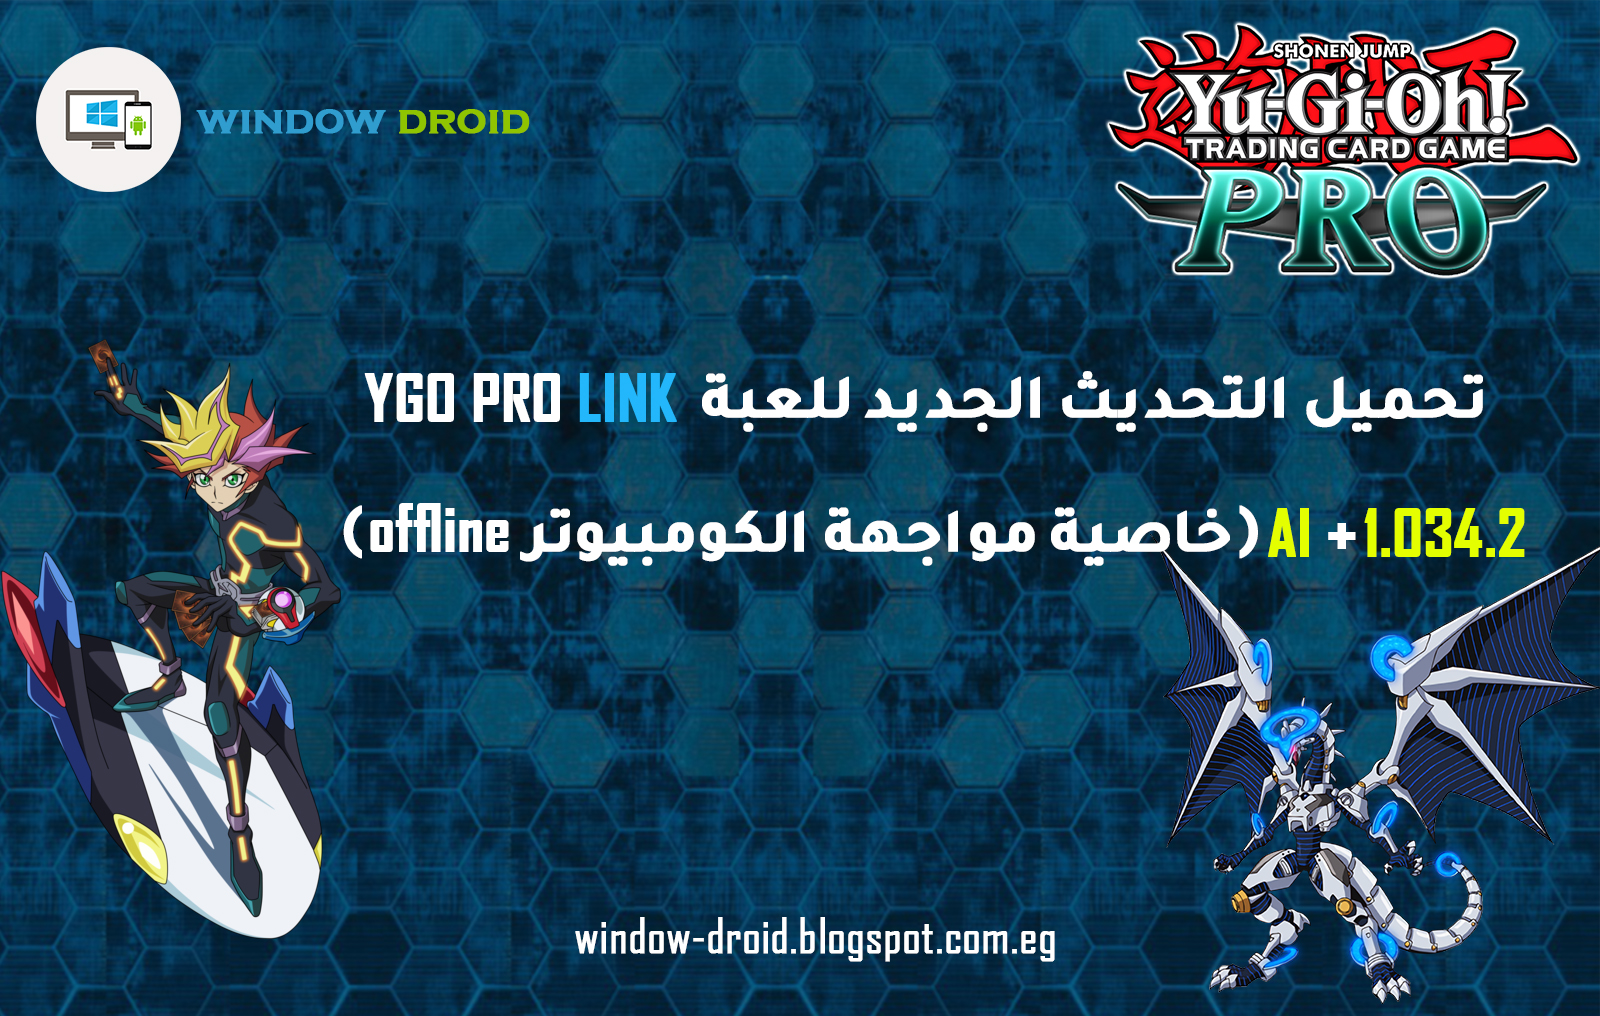 Ygopro 2 For Android